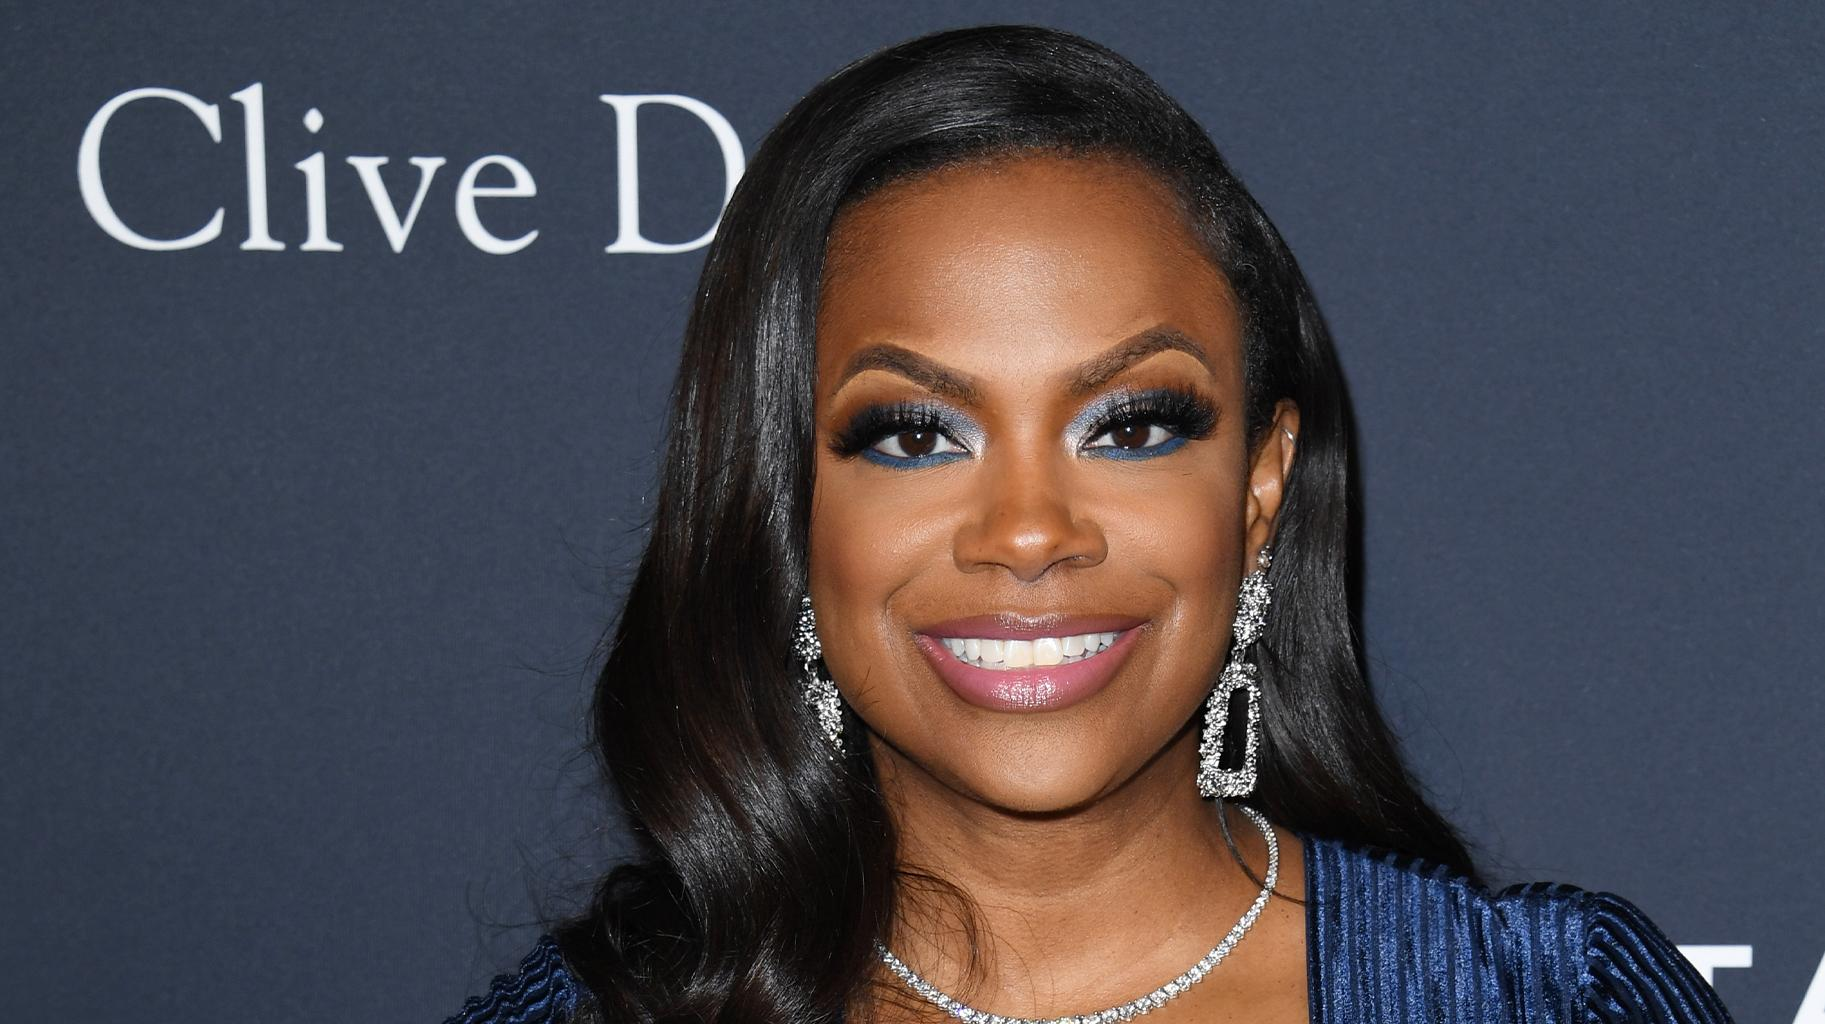 Kandi Burruss Looks Gorgeous In Her Latest Photo - See It Here